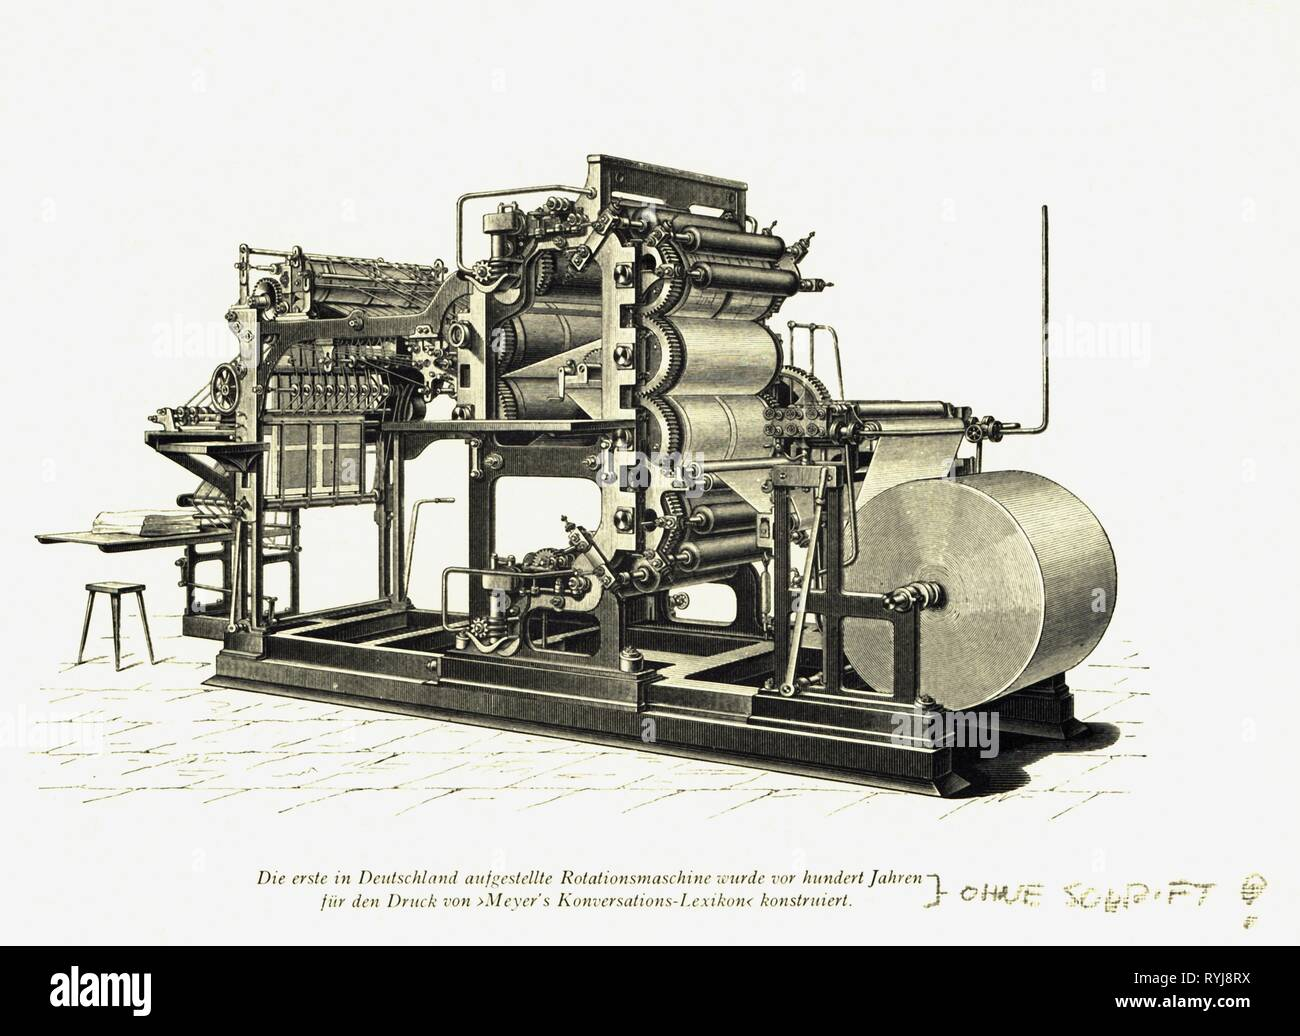 technics, typography, rotary press, Maschinenfabrik Augsburg-Nuernberg, 1880, wood engraving, late 19th century, Additional-Rights-Clearance-Info-Not-Available - Stock Image